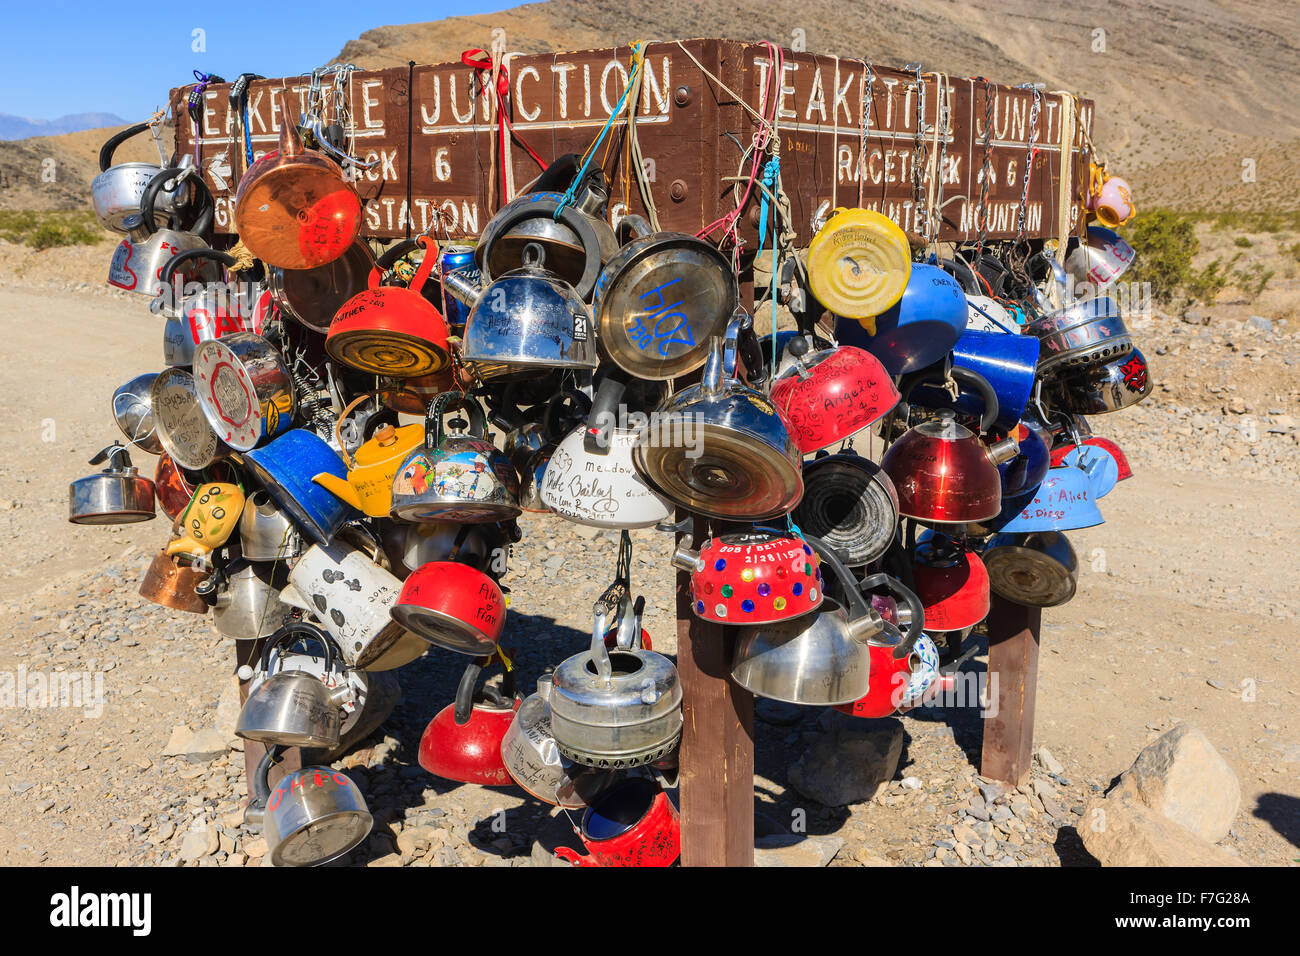 Tea kettle junction road sign in Death Valley N.P, California, USA - Stock Image